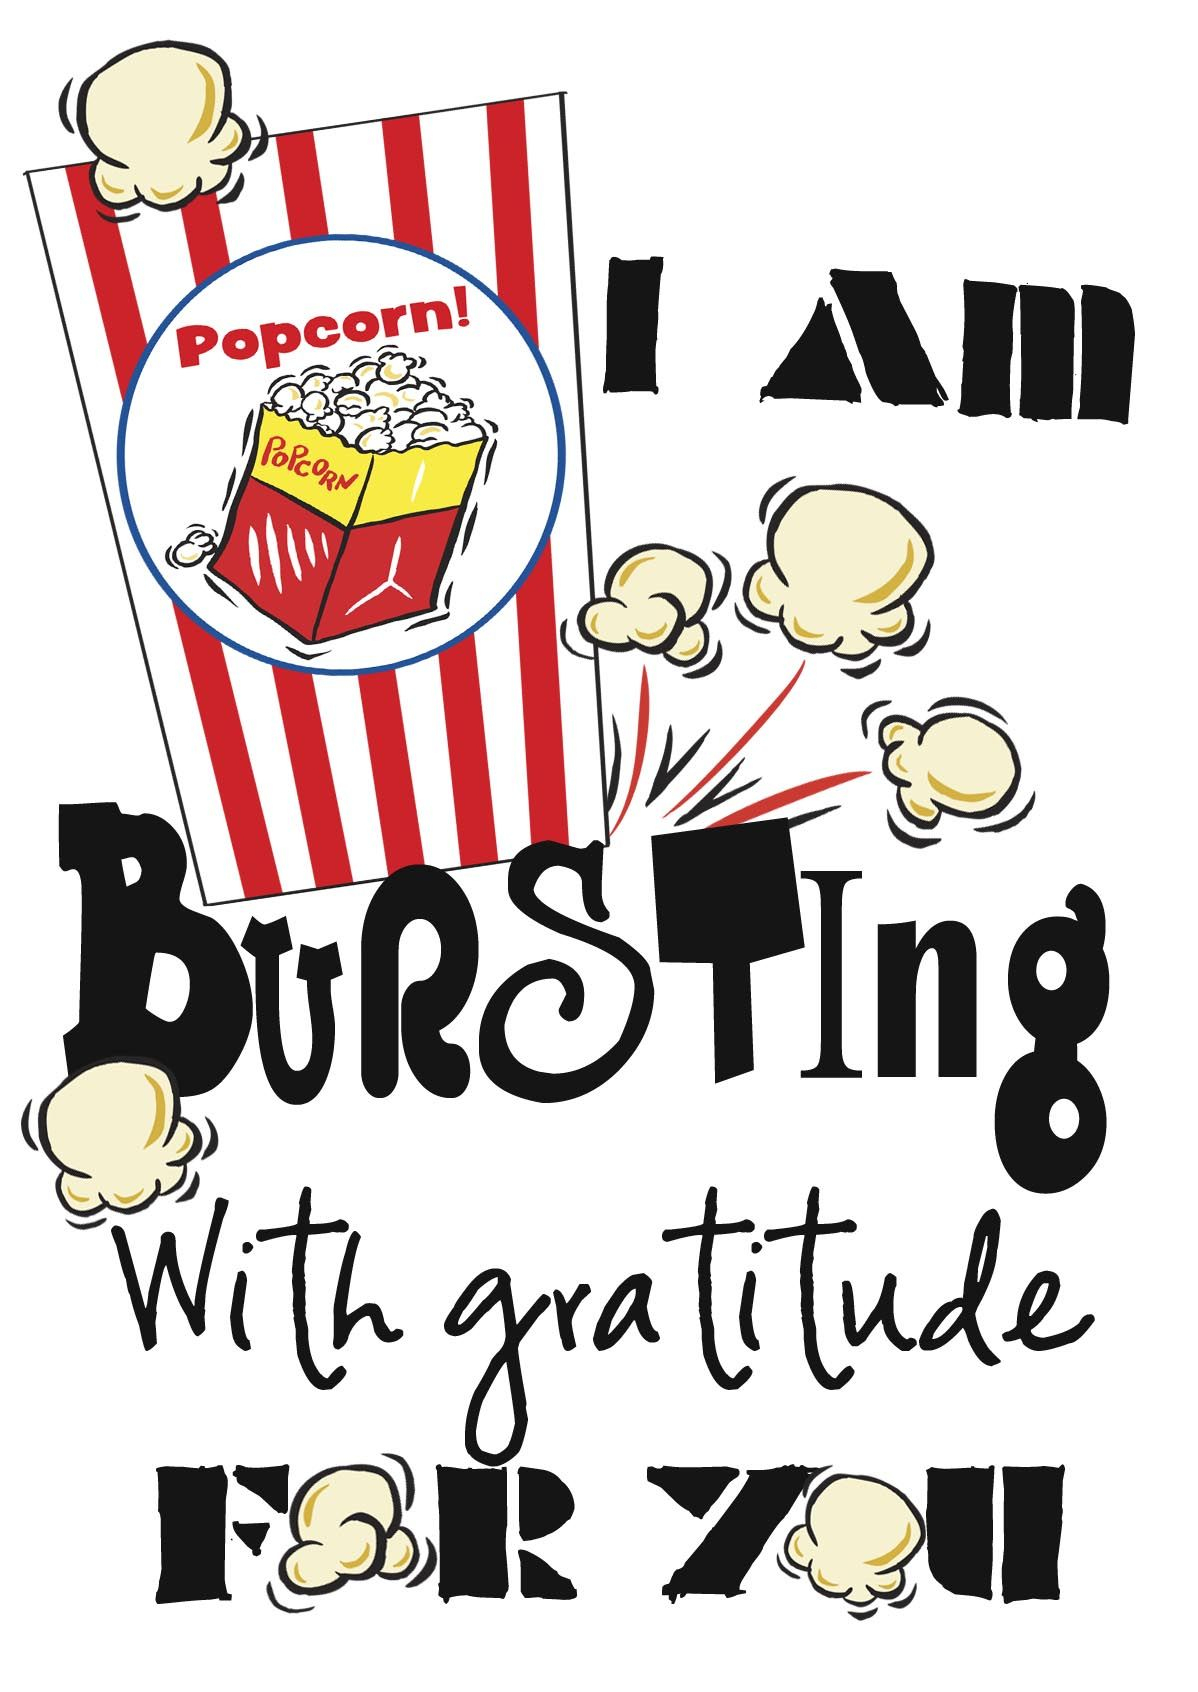 Pinamy Knight On Craft Ideas | Teacher Appreciation Gifts - Free Popcorn Teacher Appreciation Printable